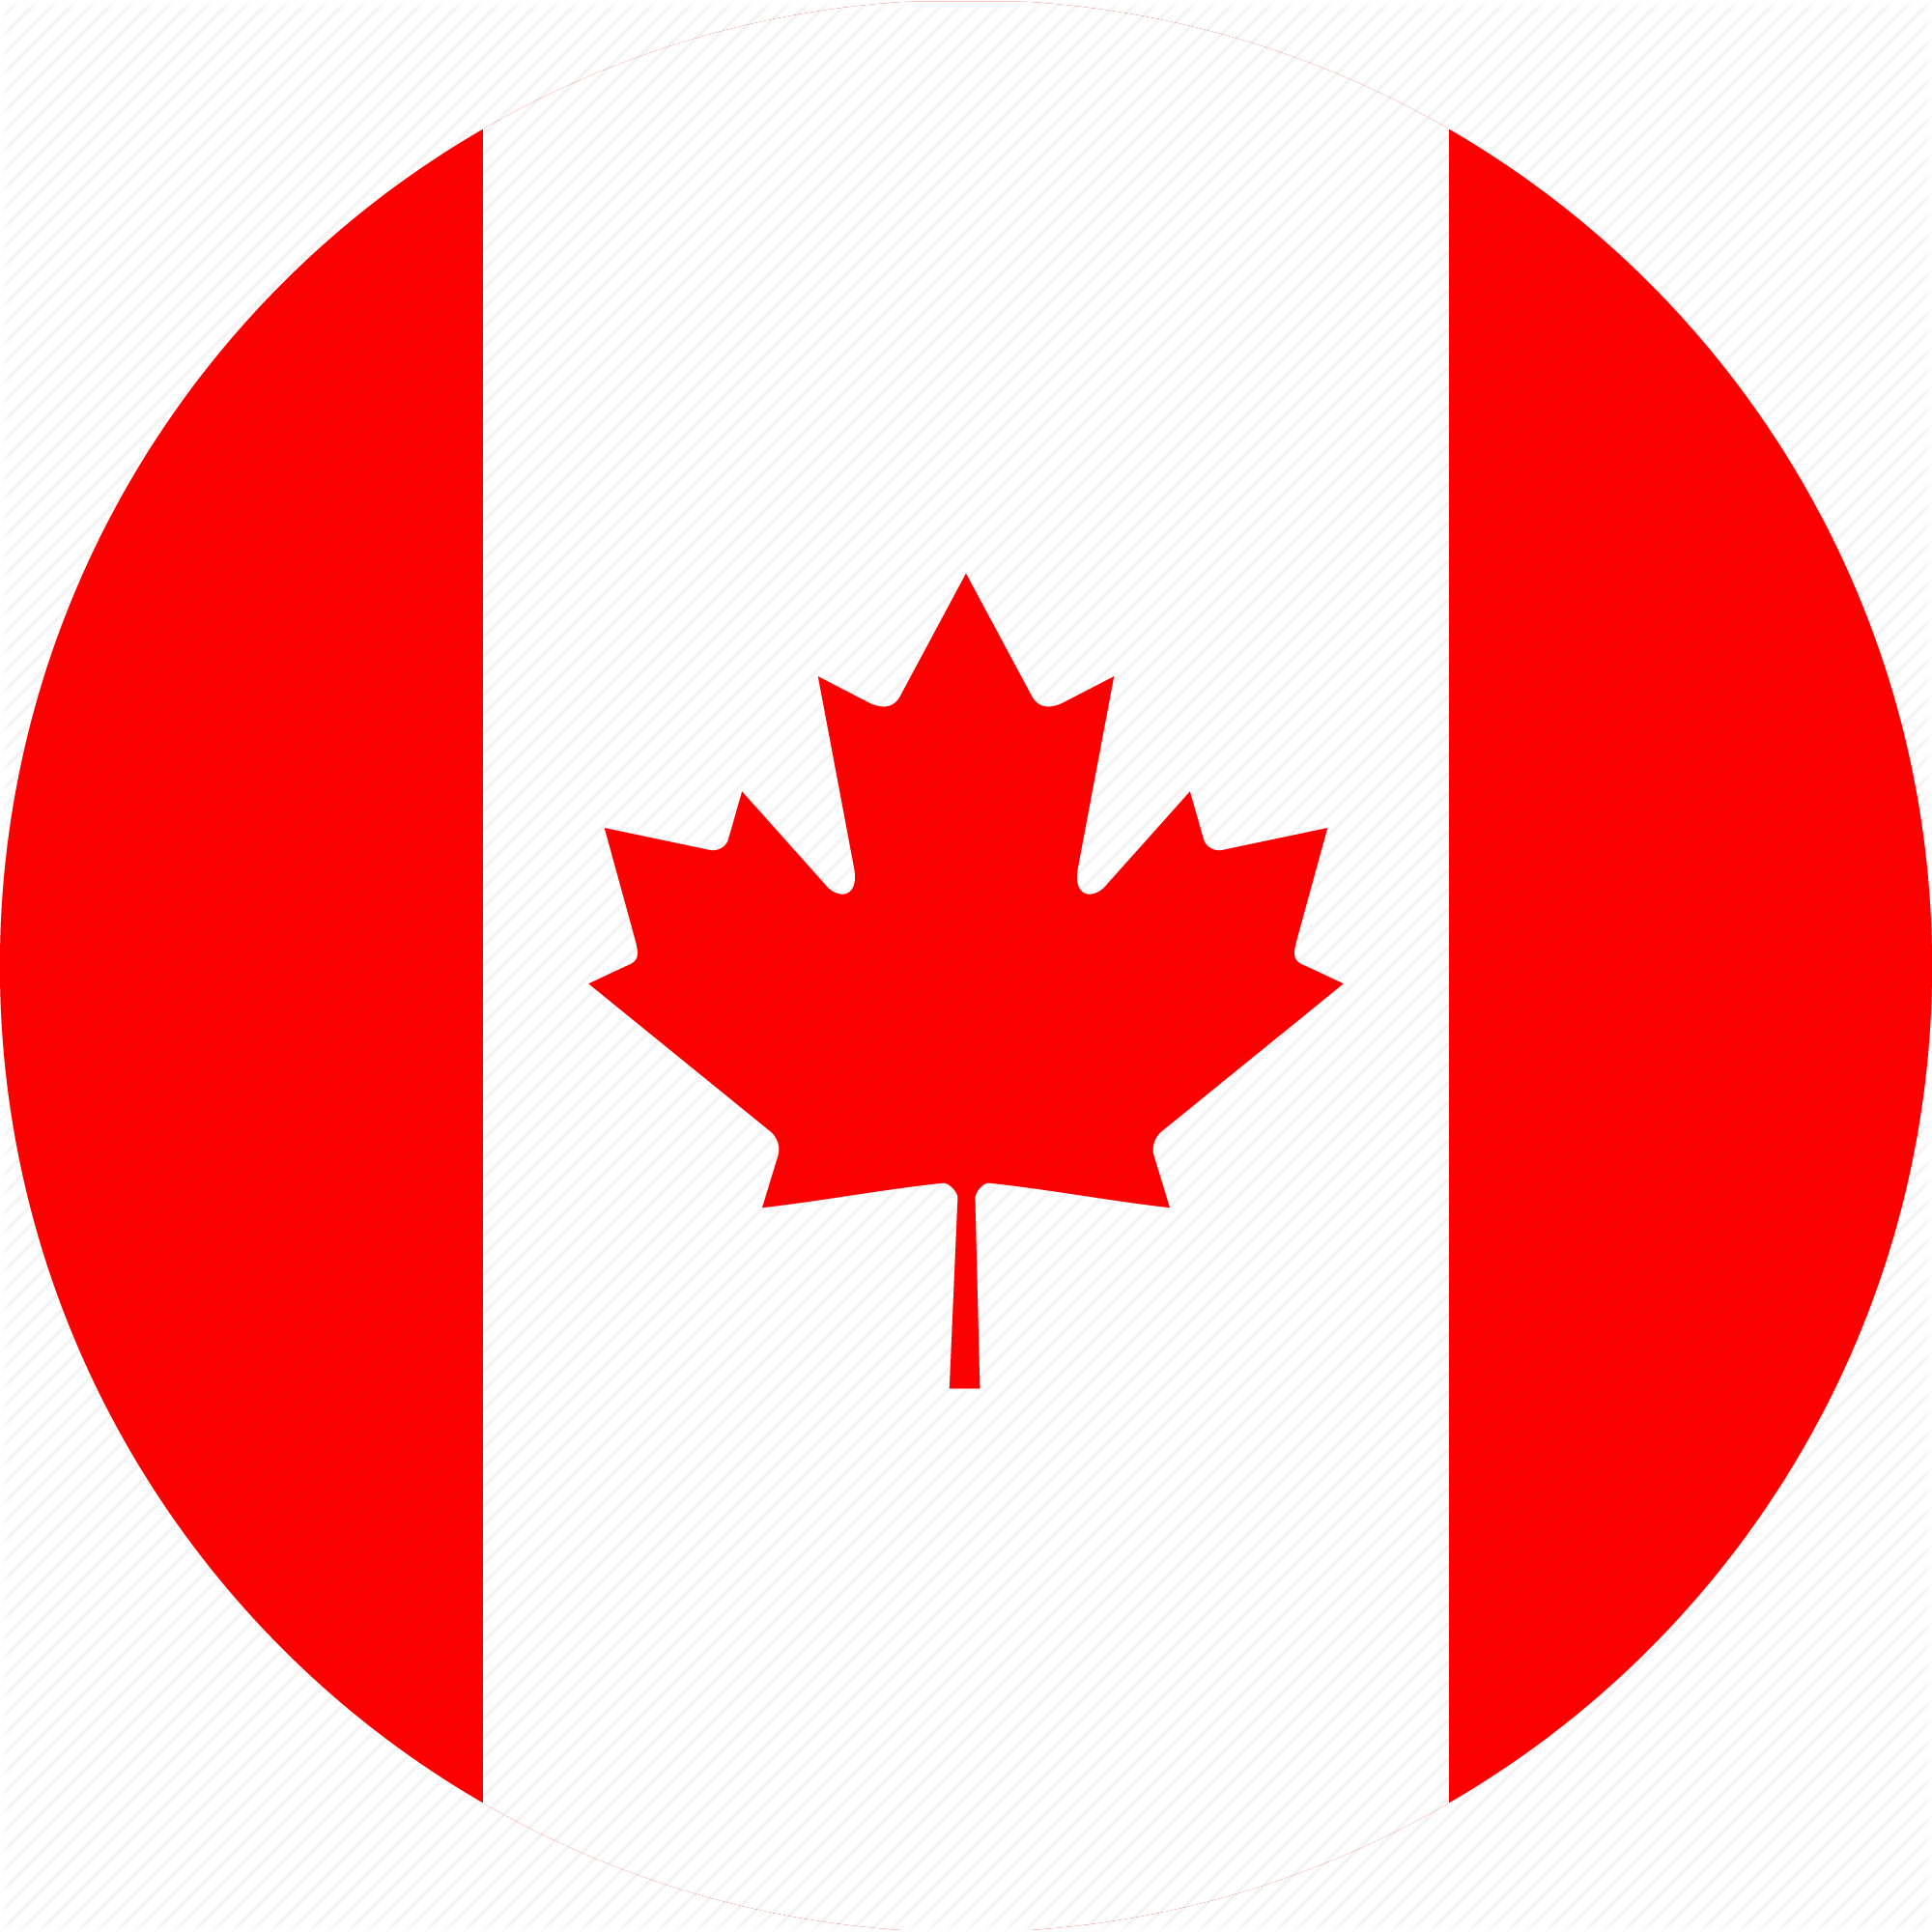 Flag Icons of Canada | 3D Flags - Animated waving flags of the